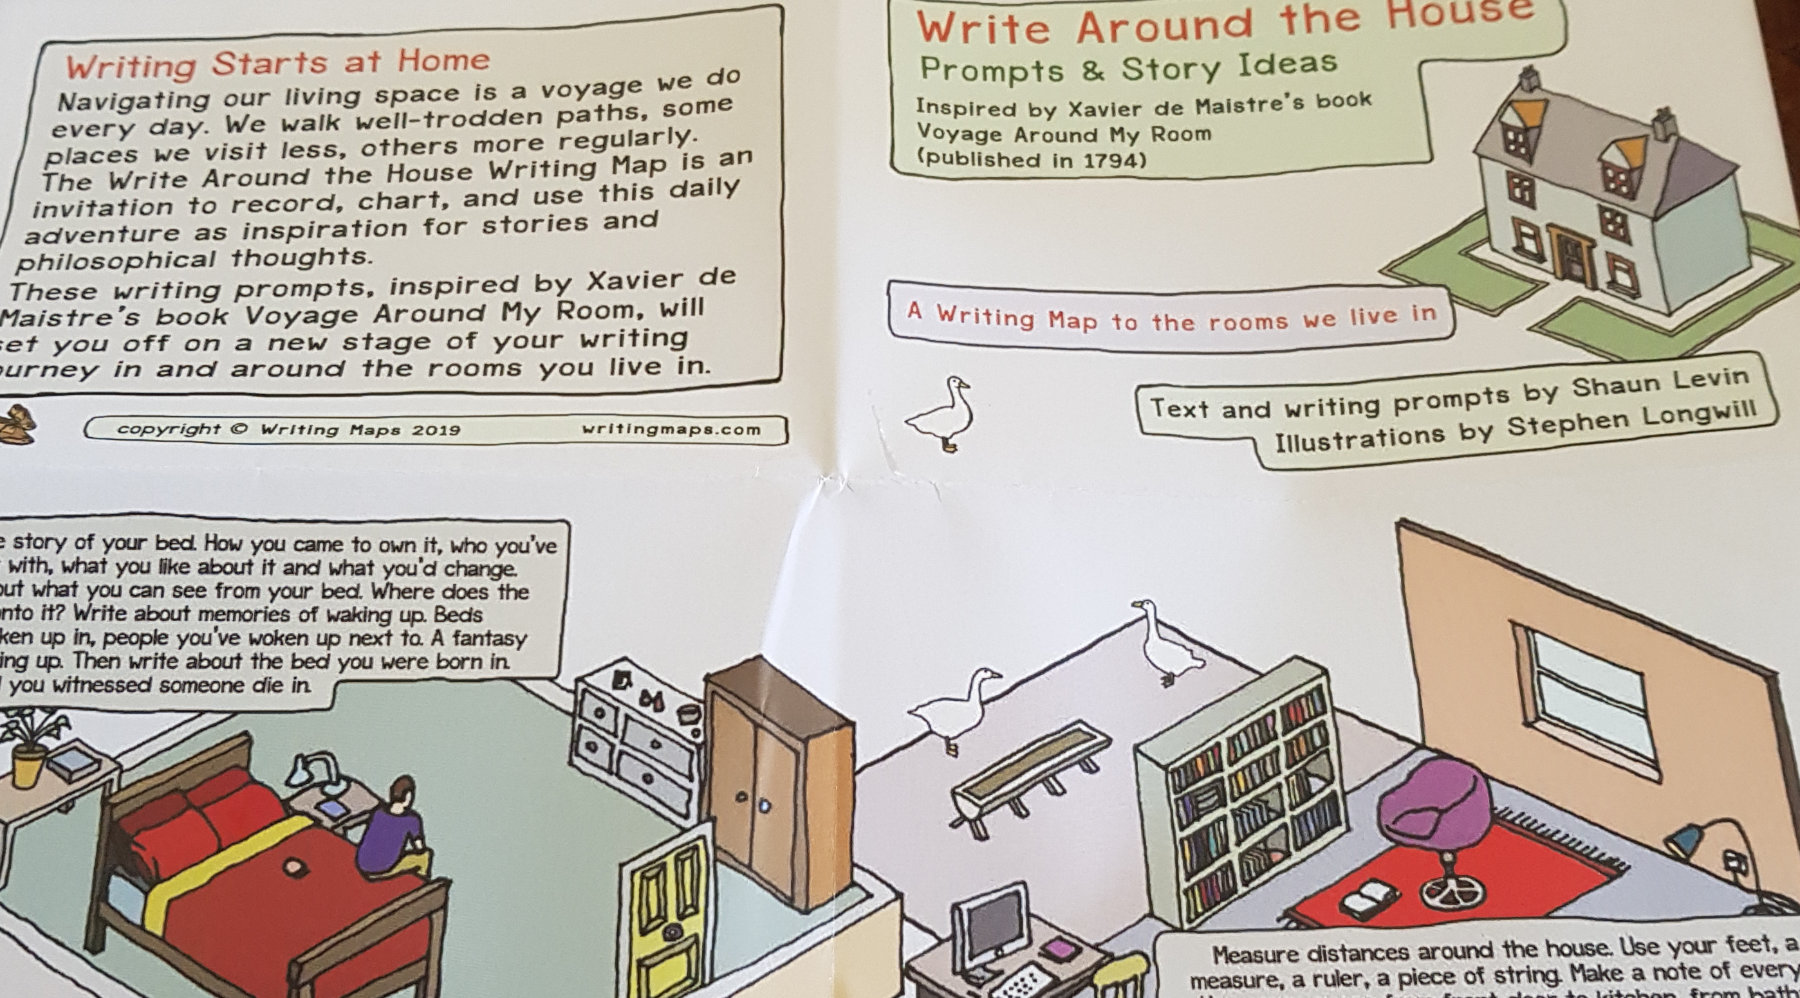 Write About the House by Writing Maps